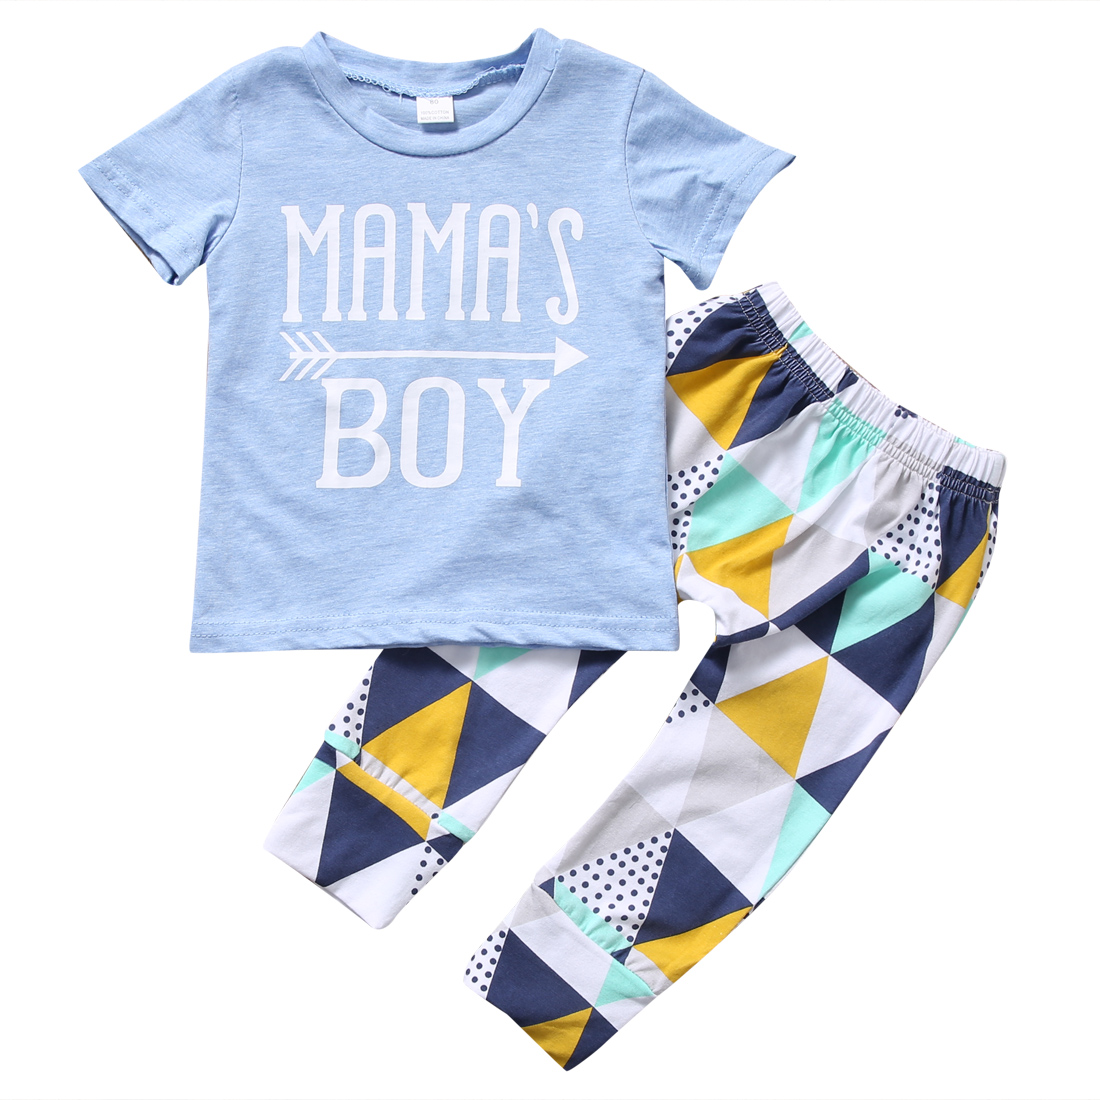 2017 Newborn Baby Boy Clothes Summer Short Sleeve Mama's Boy Cotton T-shirt Tops Pant 2PCS Outfit Toddler Kids Clothing Set baby boy clothes kids bodysuit infant coverall newborn romper short sleeve polo shirt cotton children costume outfit suit